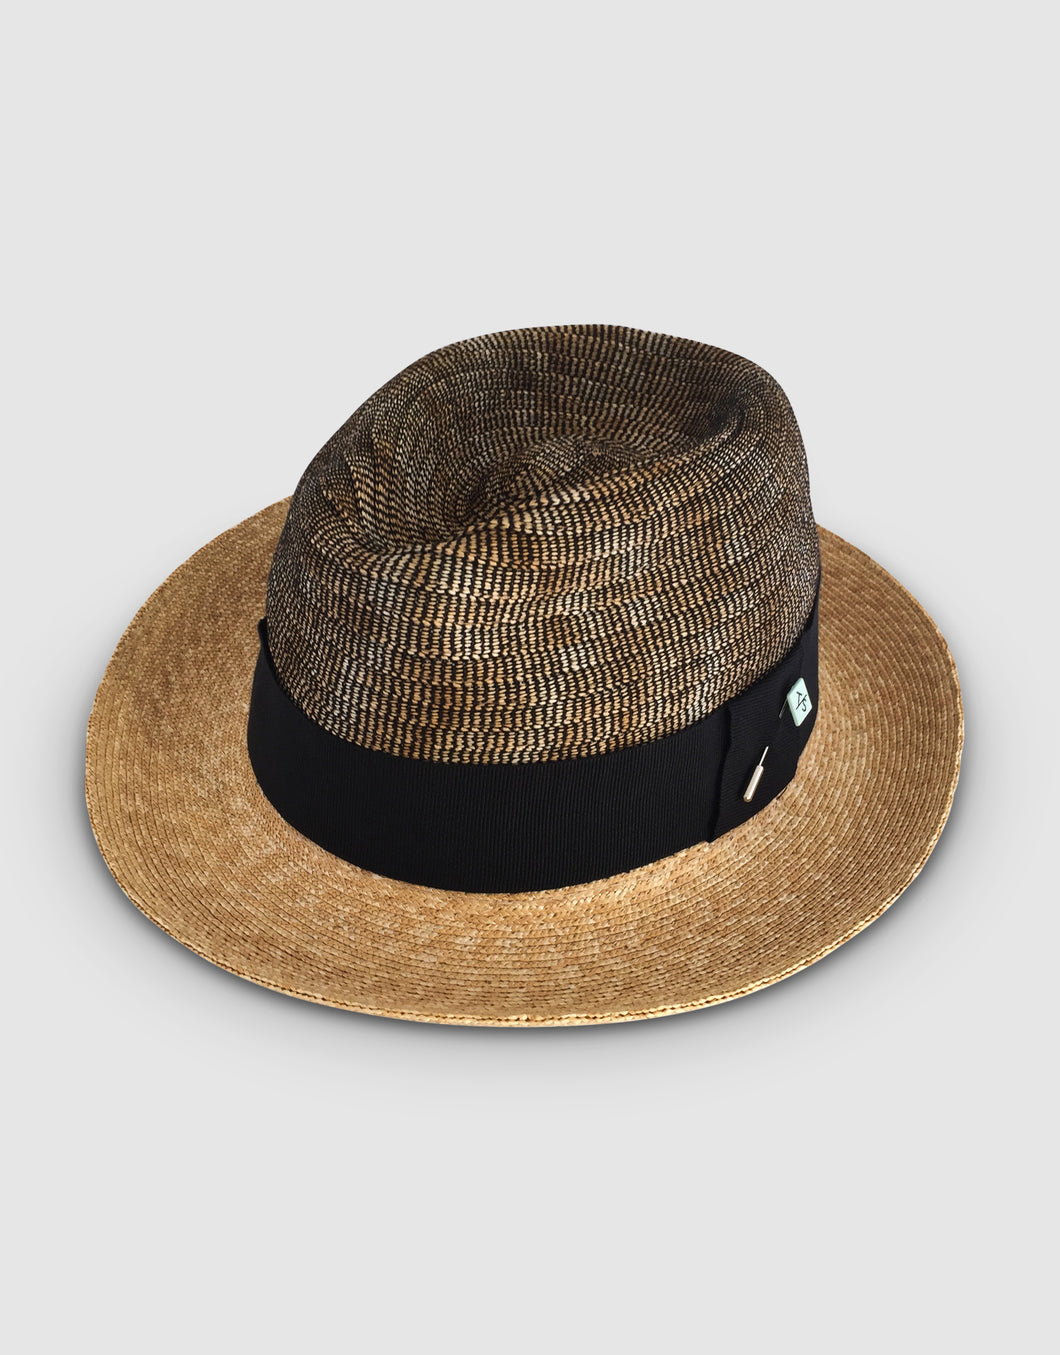 Straw & Braid 307 Fedora Hat, Natural and Beige